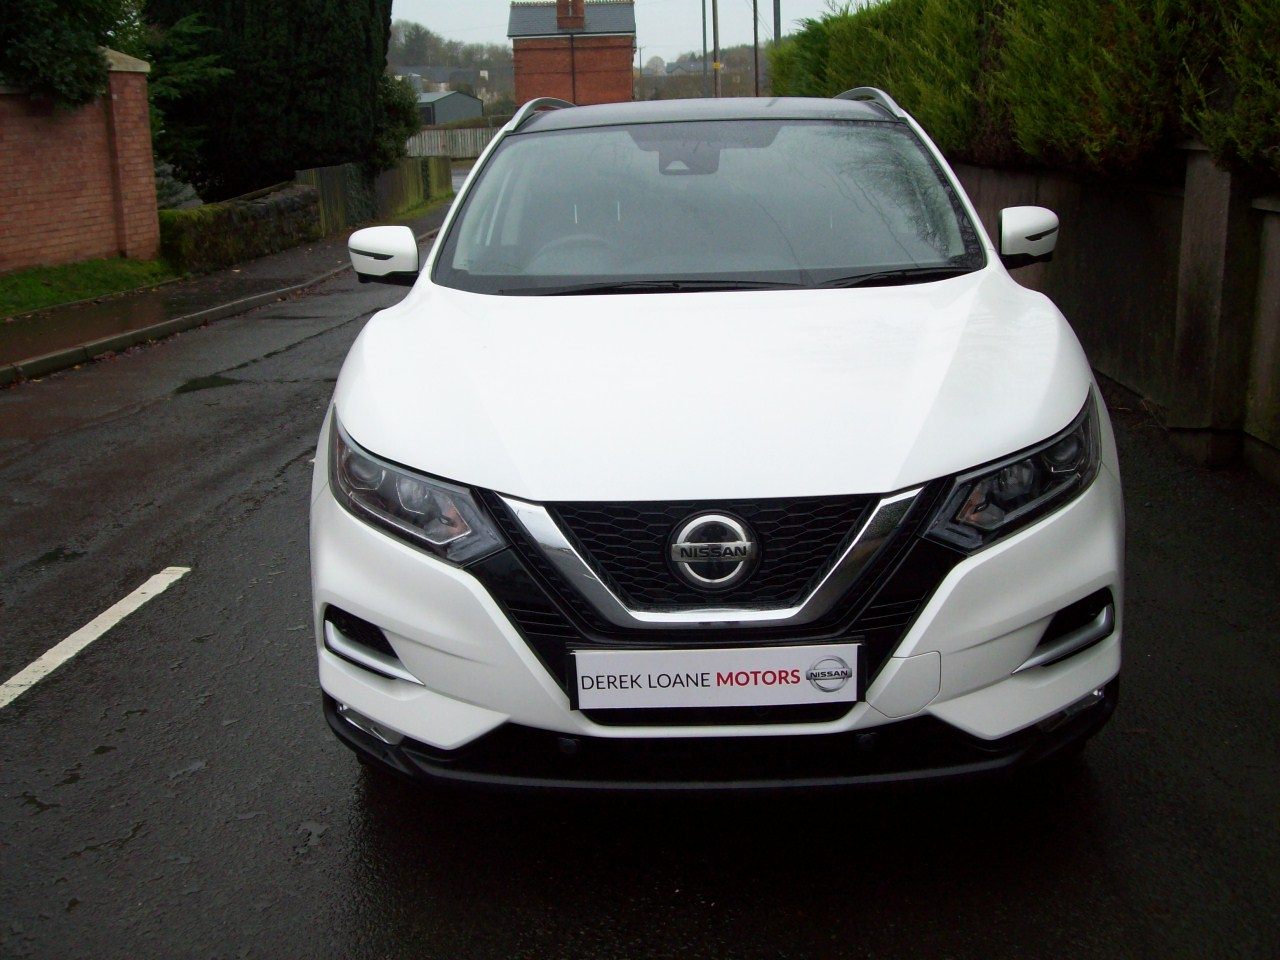 2020 Nissan Qashqai Unleaded Manual – Derek Loane Motors full